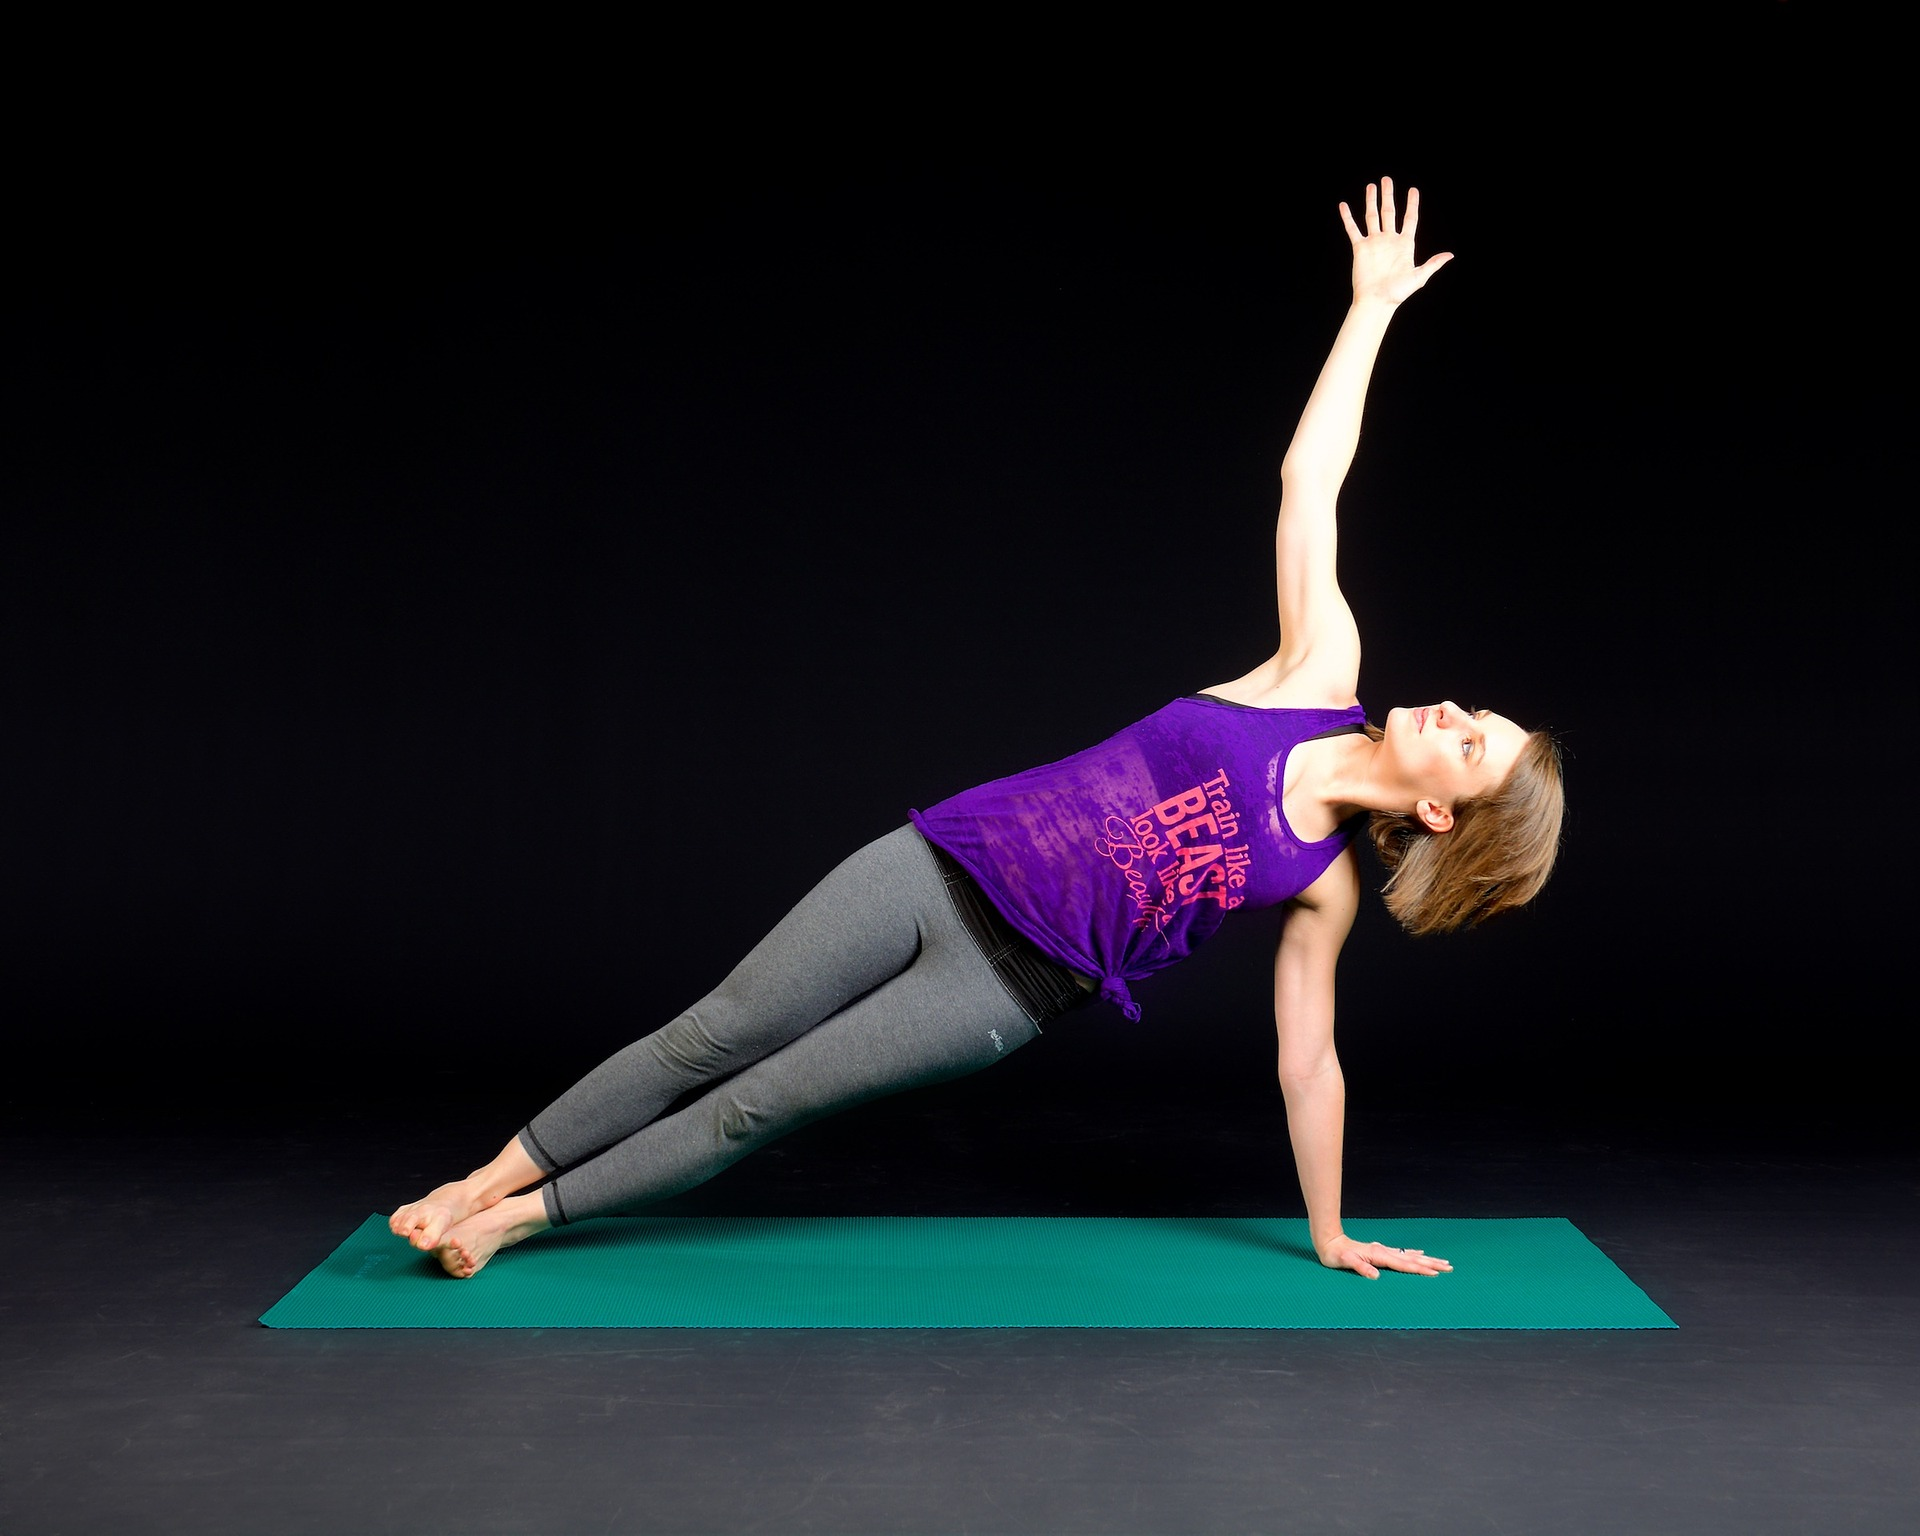 Picture of a young woman holding a side-plank pose with one arm extended upward towards the sky. Amniofix therapy provided by Karlfeldt Center of Meridian, Idaho.